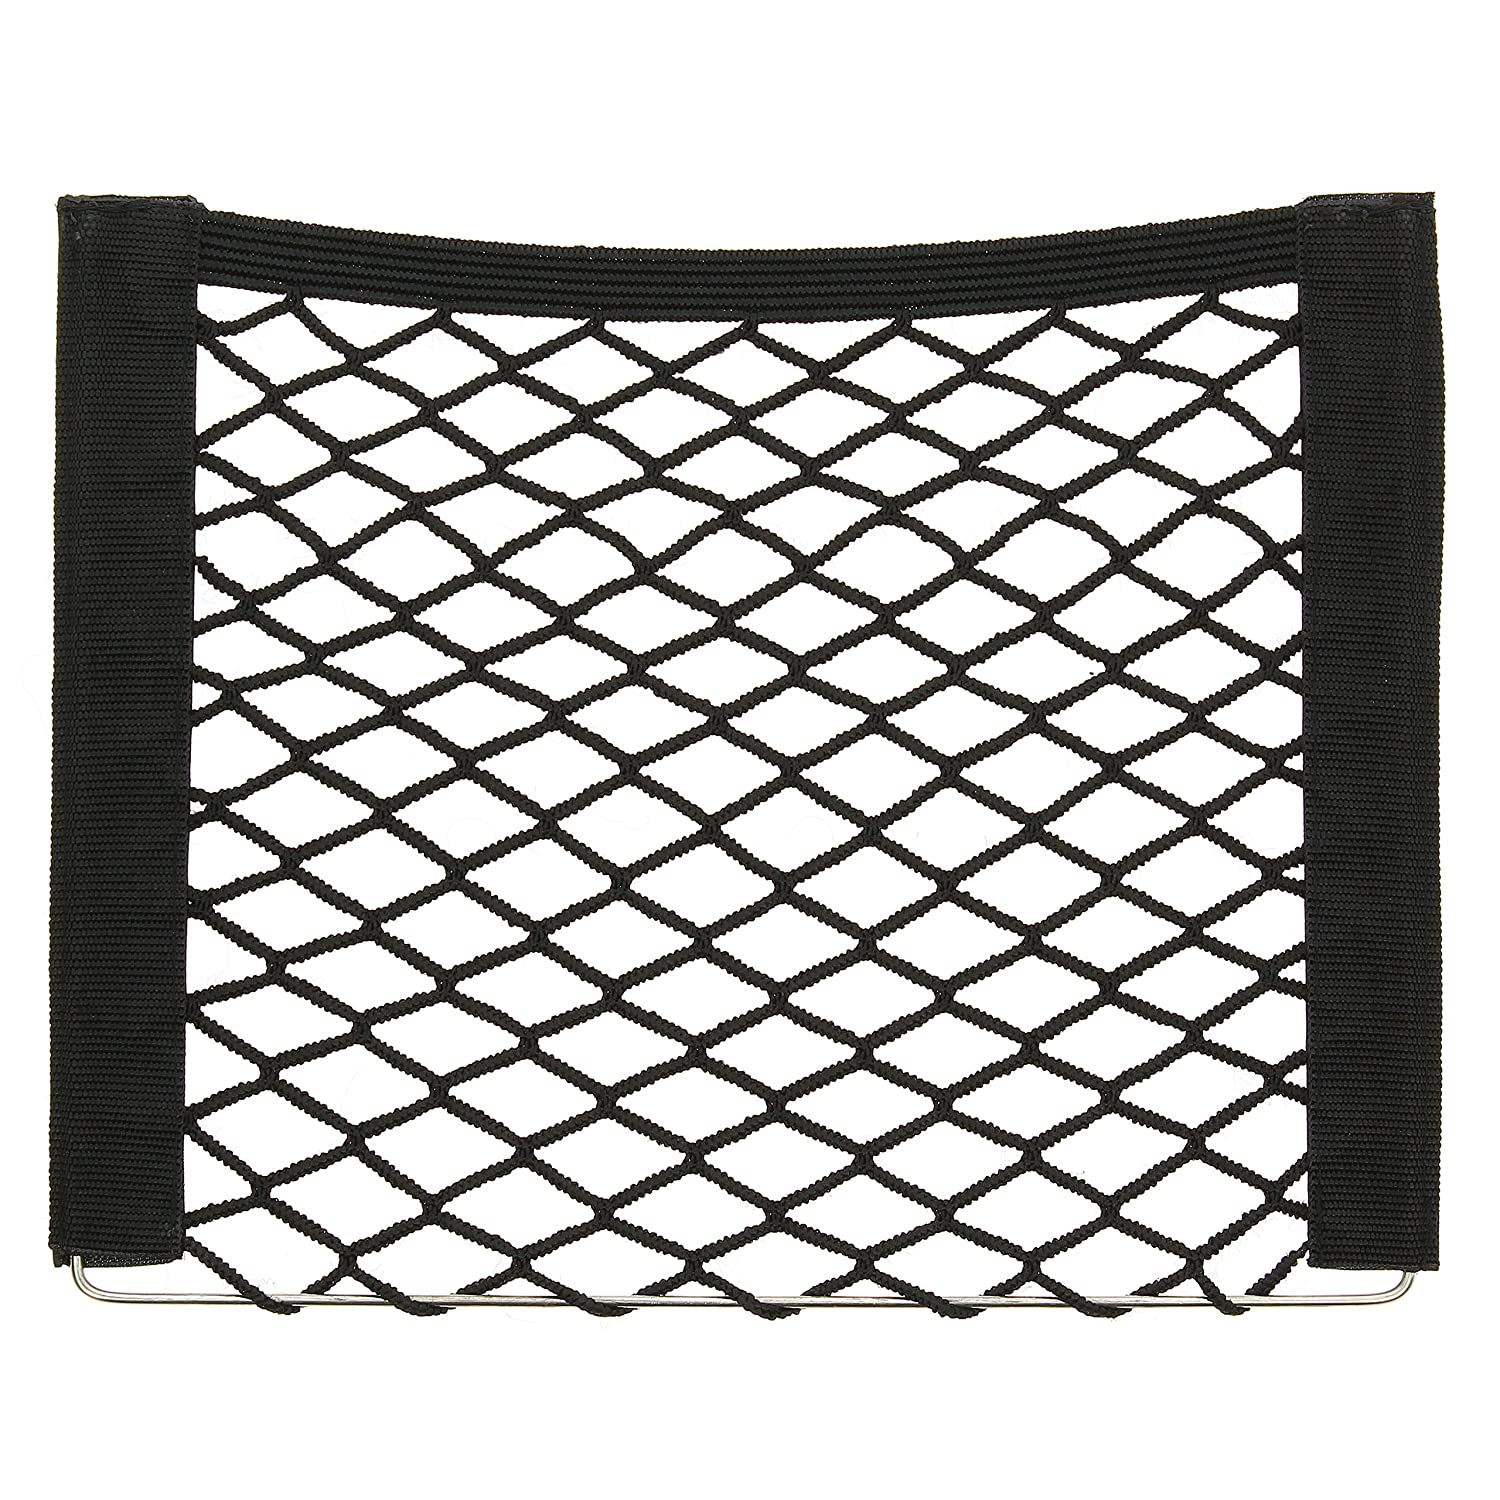 SUMEX 0000783 Small Storage Net (25x30cm)